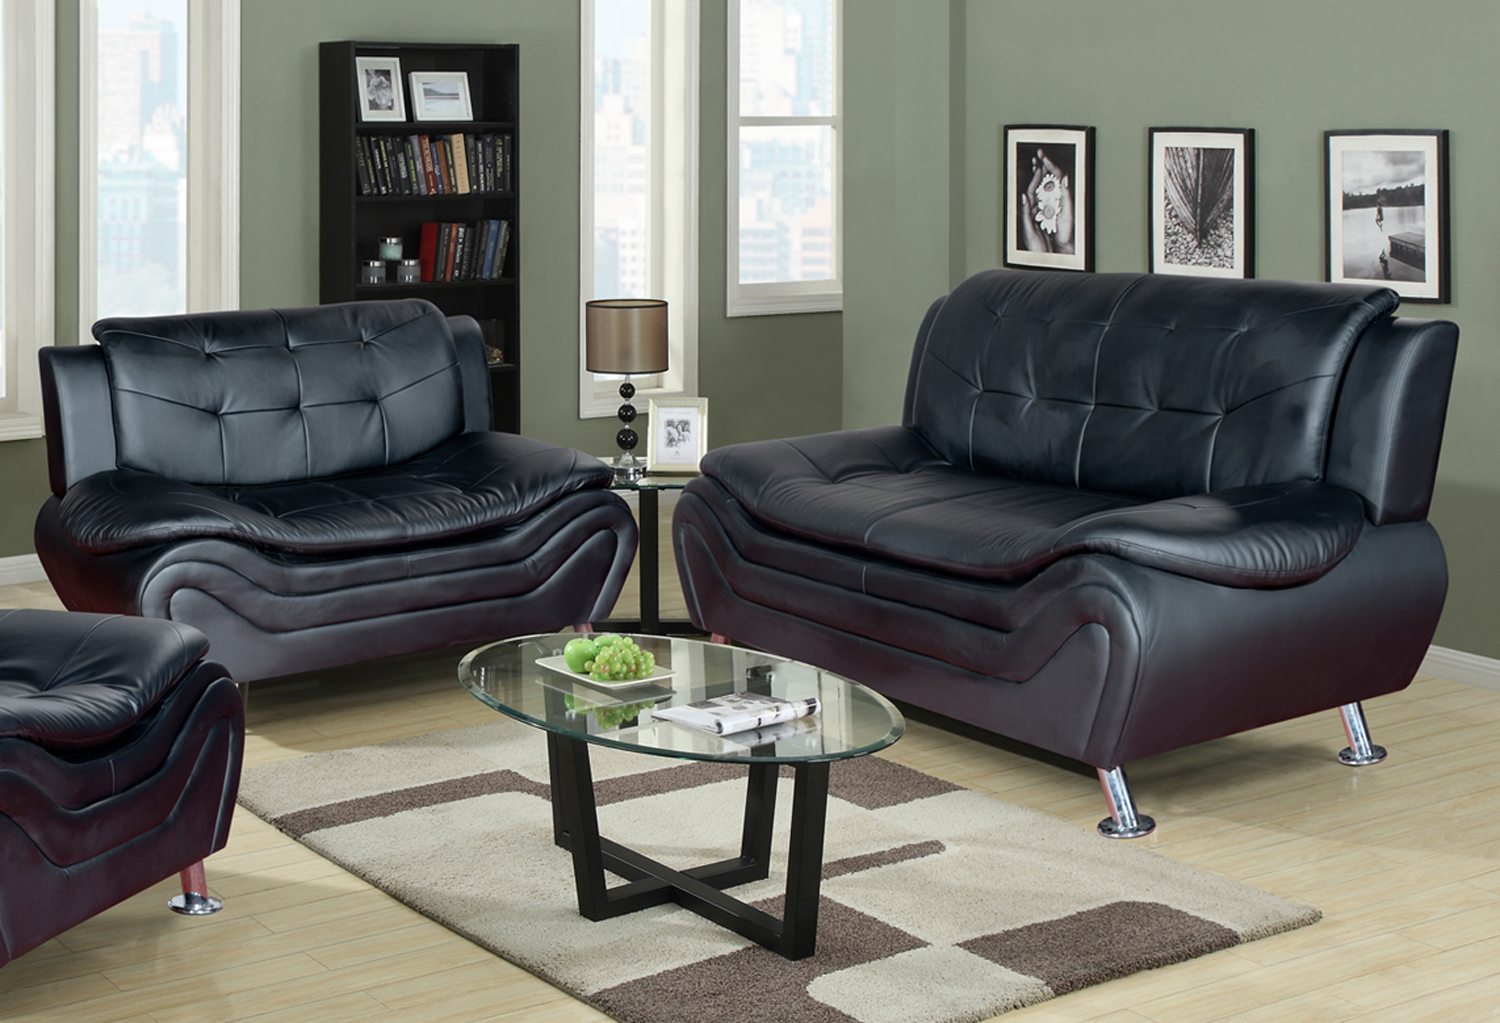 Frady 2 Pc Black Faux Leather Modern Living Room Sofa And Loveseat Set